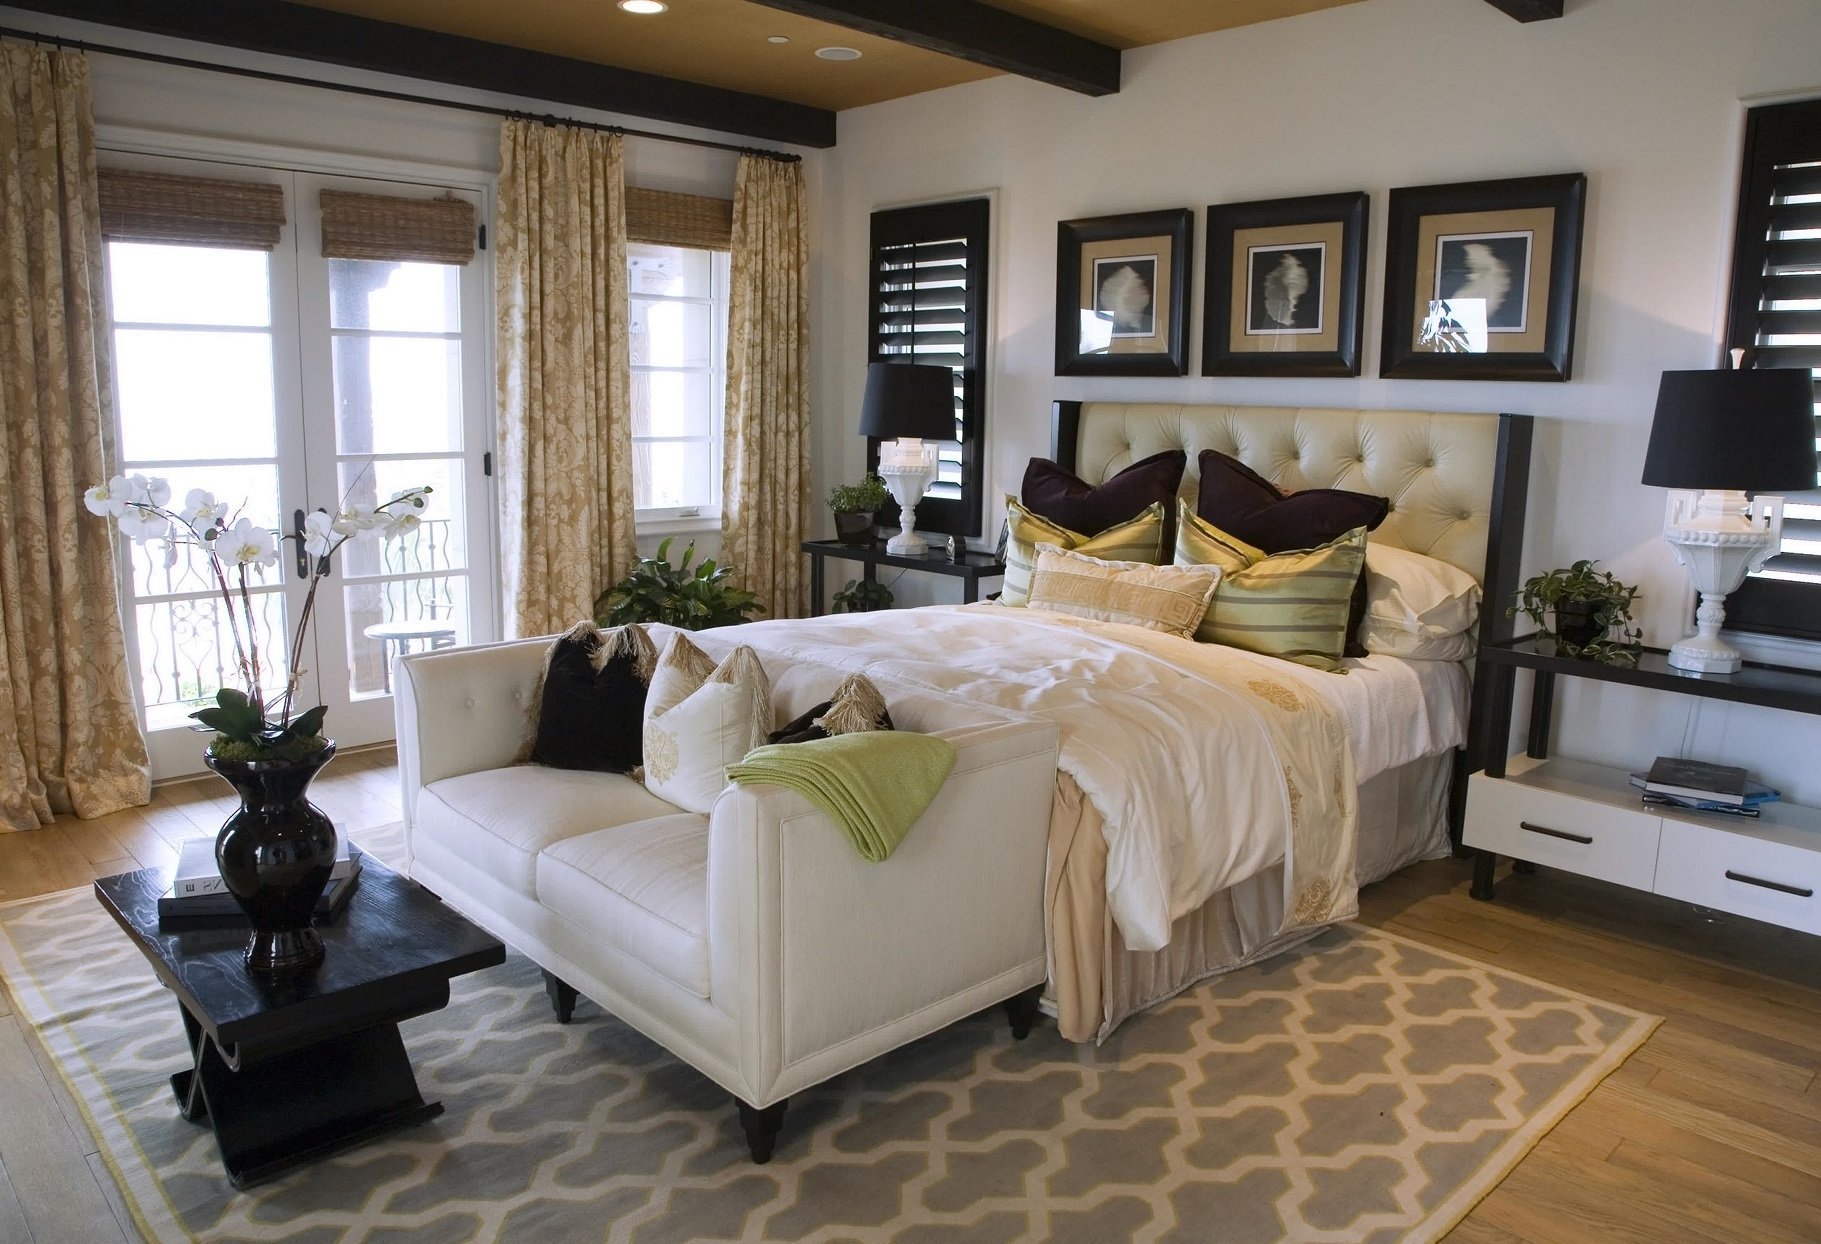 10 Stunning Ideas For Decorating A Bedroom arenmall interior decorating ideas and home design 2020